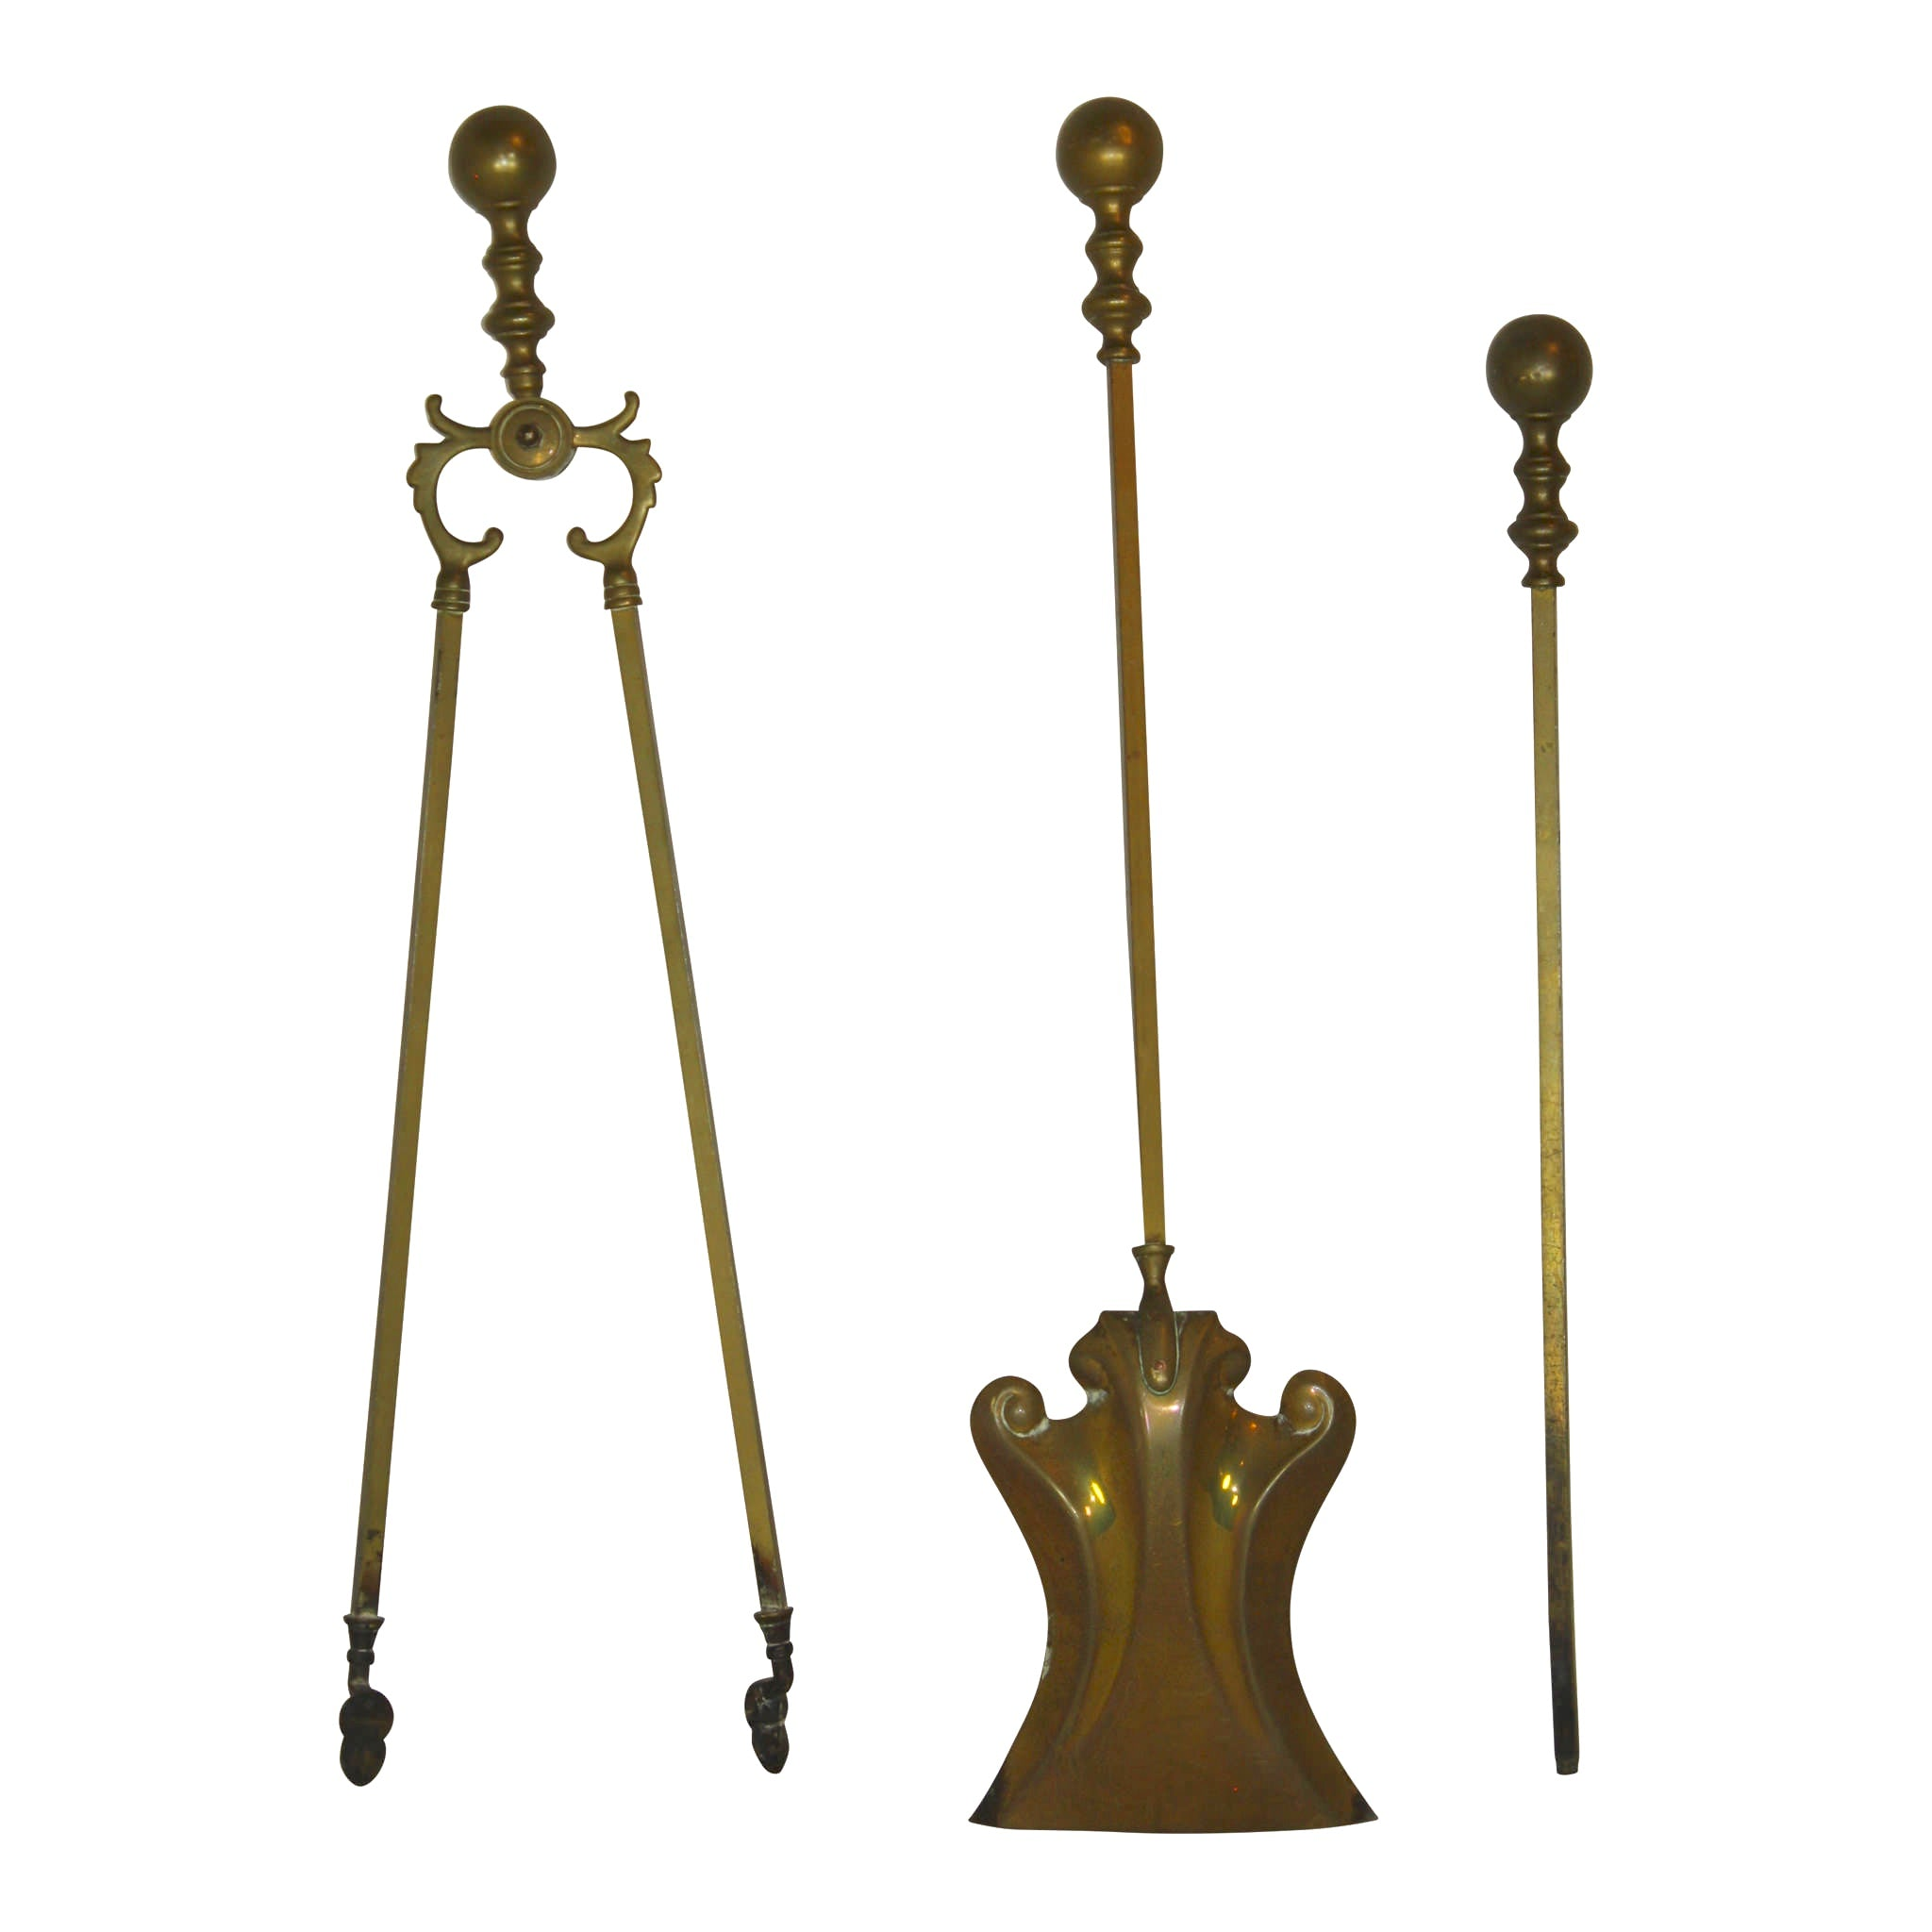 Brass Fireplace Tools/Set of Three